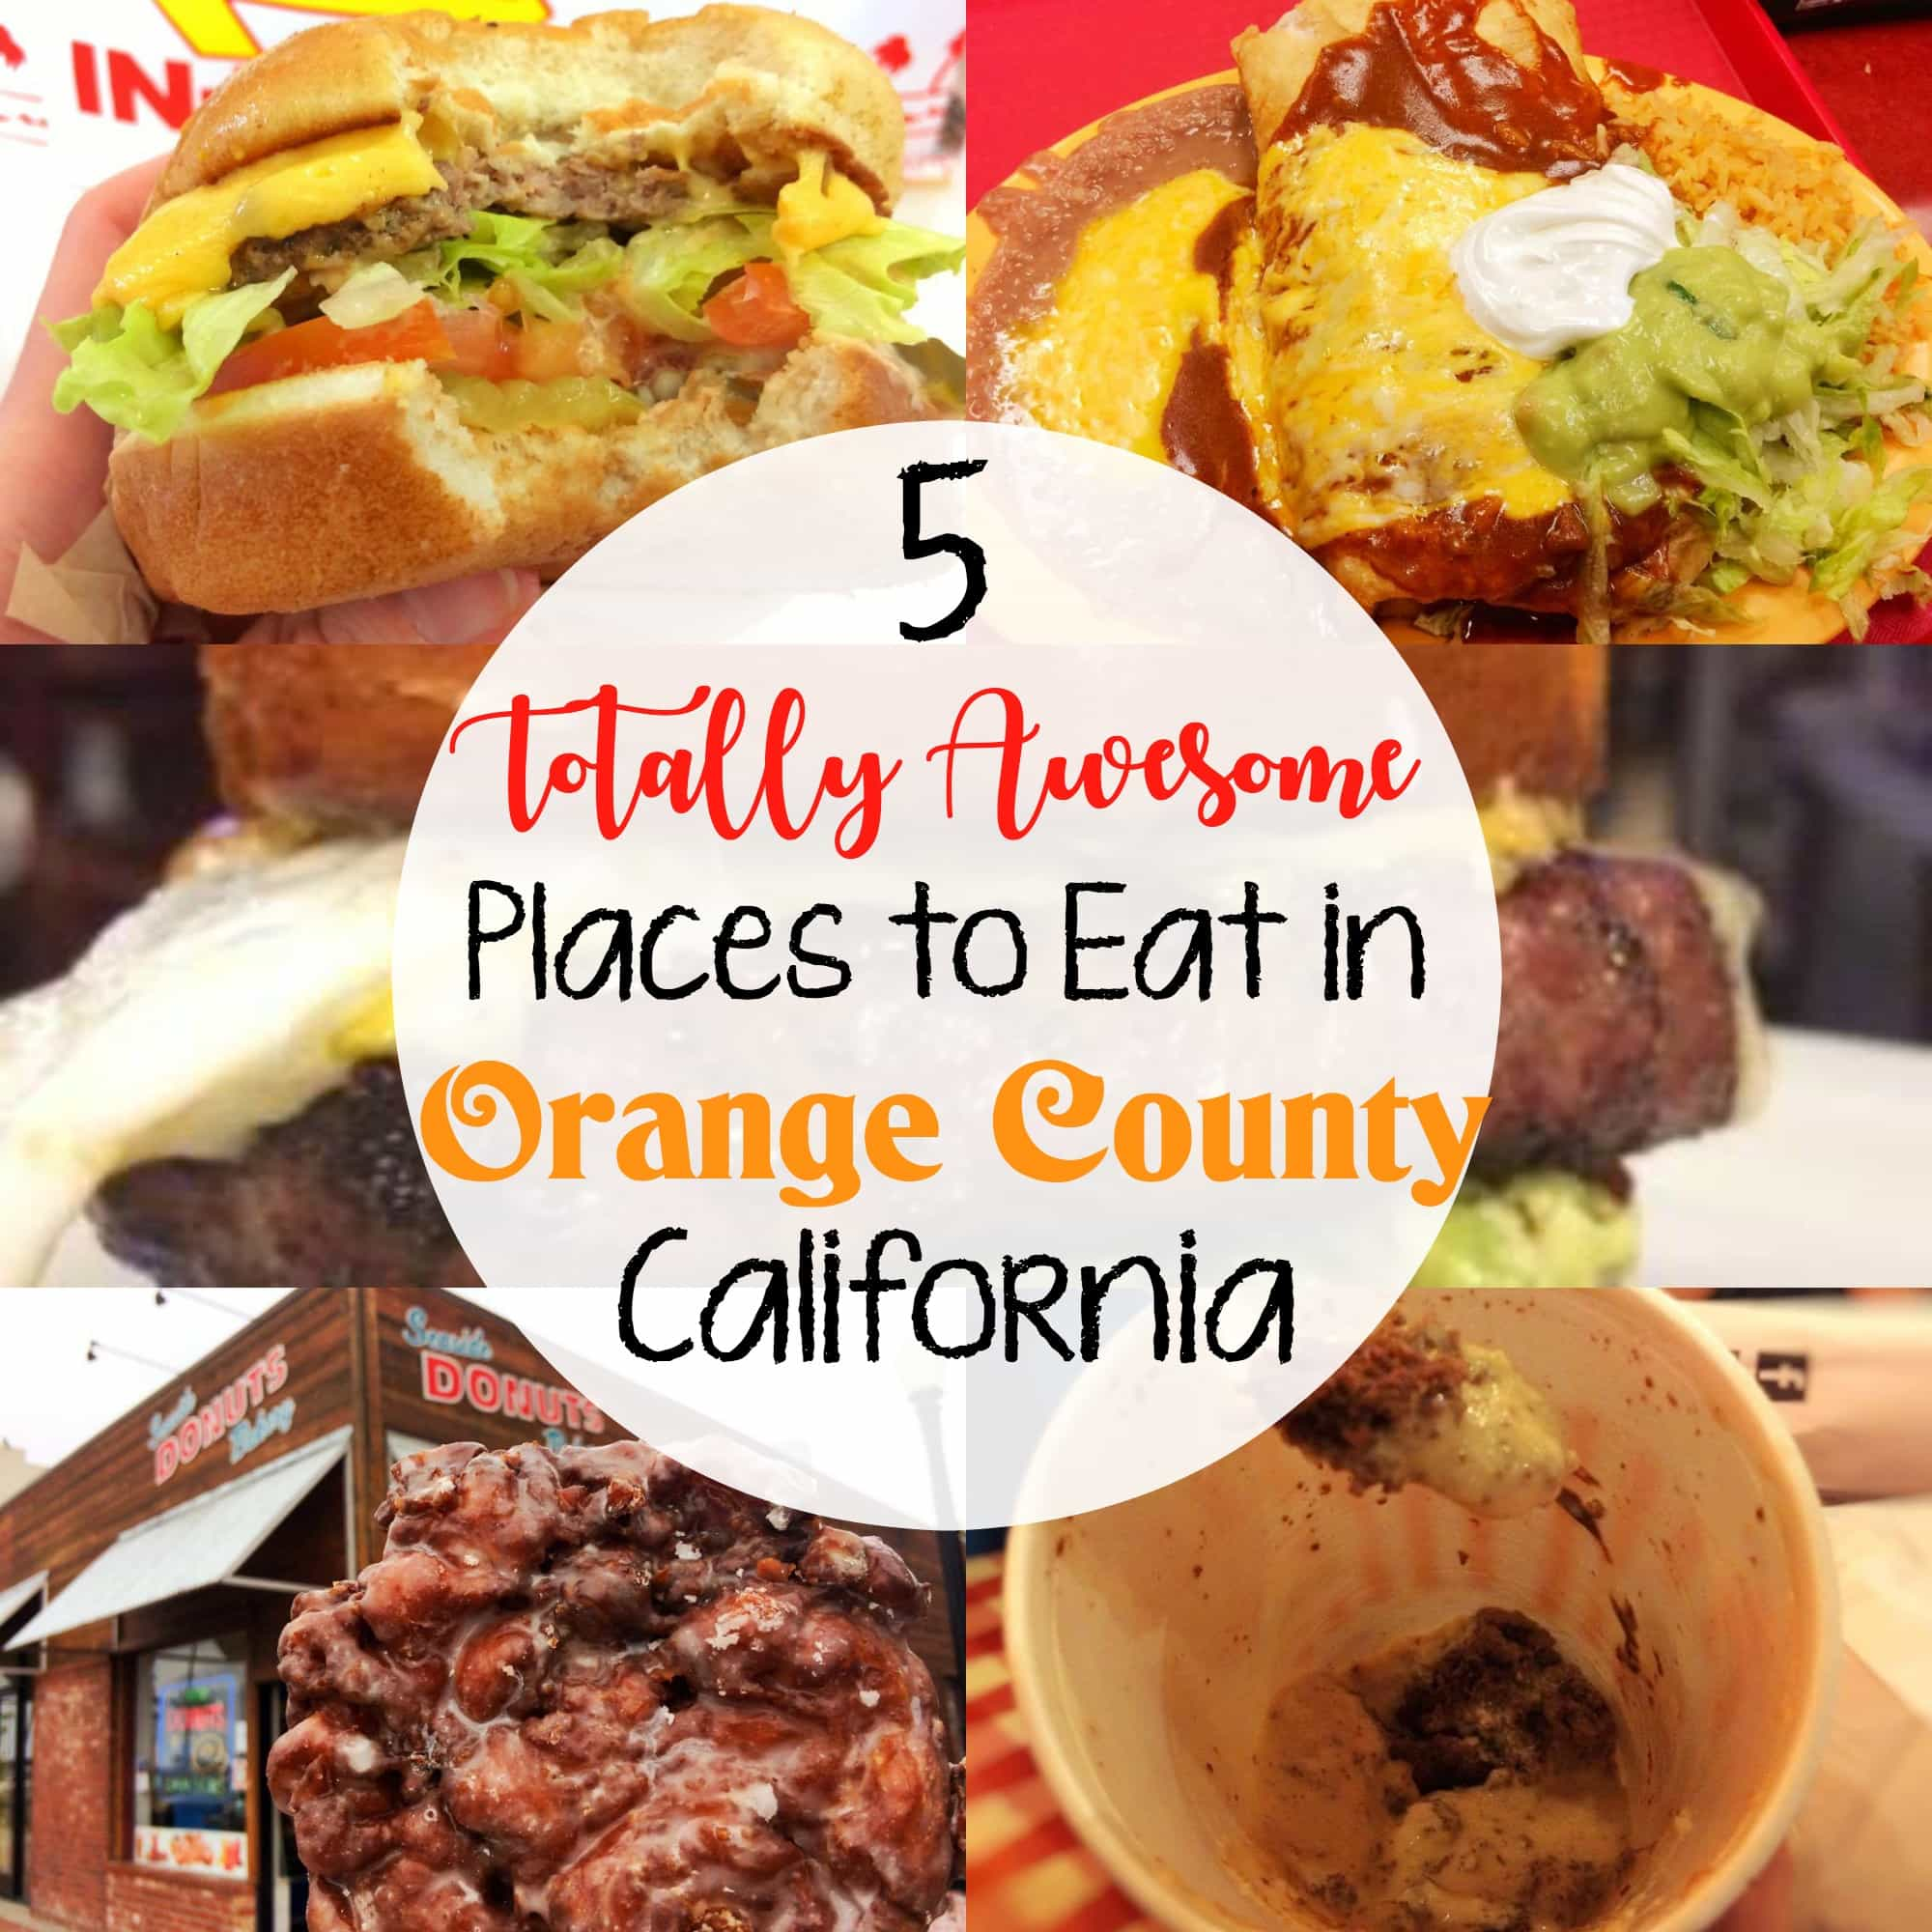 Want to know where to eat in Orange County California? These Five Totally Awesome Places to Eat in Orange County, California won't disappoint!